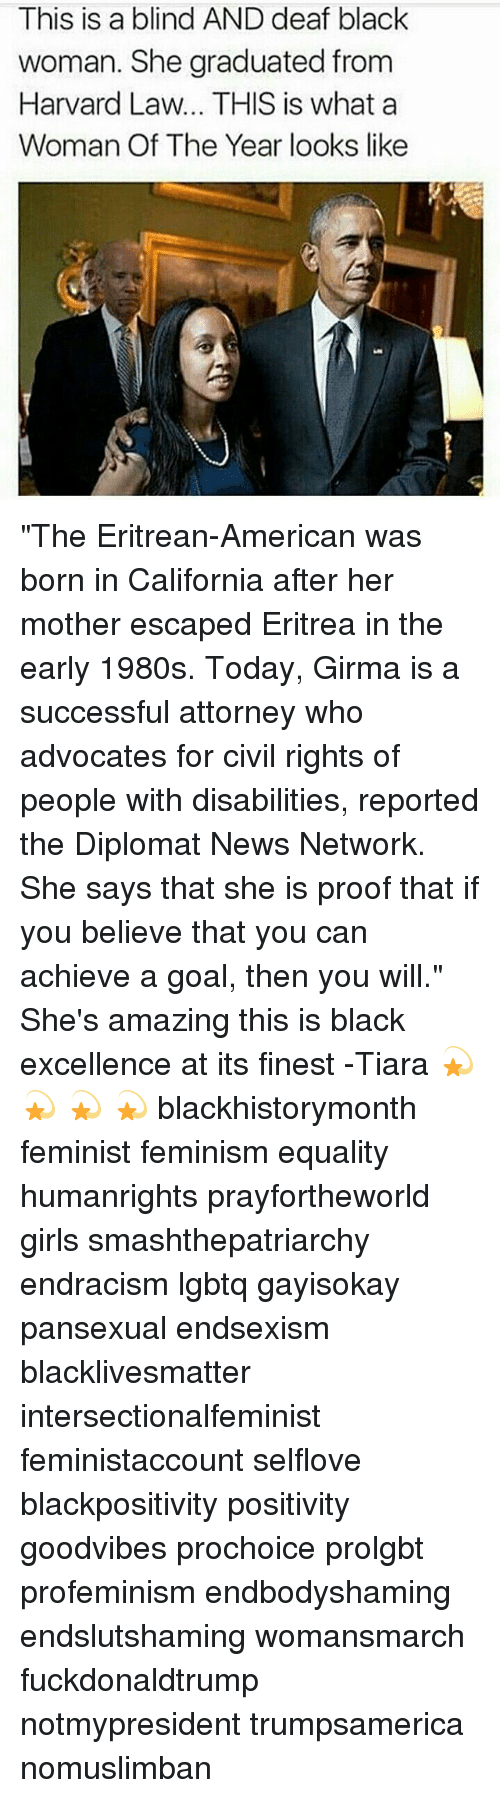 """diplomat: This is a blind AND deaf black  woman. She graduated from  Harvard Law... THIS is what a  Woman Of The Year looks like """"The Eritrean-American was born in California after her mother escaped Eritrea in the early 1980s. Today, Girma is a successful attorney who advocates for civil rights of people with disabilities, reported the Diplomat News Network. She says that she is proof that if you believe that you can achieve a goal, then you will."""" She's amazing this is black excellence at its finest -Tiara 💫 💫 💫 💫 blackhistorymonth feminist feminism equality humanrights prayfortheworld girls smashthepatriarchy endracism lgbtq gayisokay pansexual endsexism blacklivesmatter intersectionalfeminist feministaccount selflove blackpositivity positivity goodvibes prochoice prolgbt profeminism endbodyshaming endslutshaming womansmarch fuckdonaldtrump notmypresident trumpsamerica nomuslimban"""